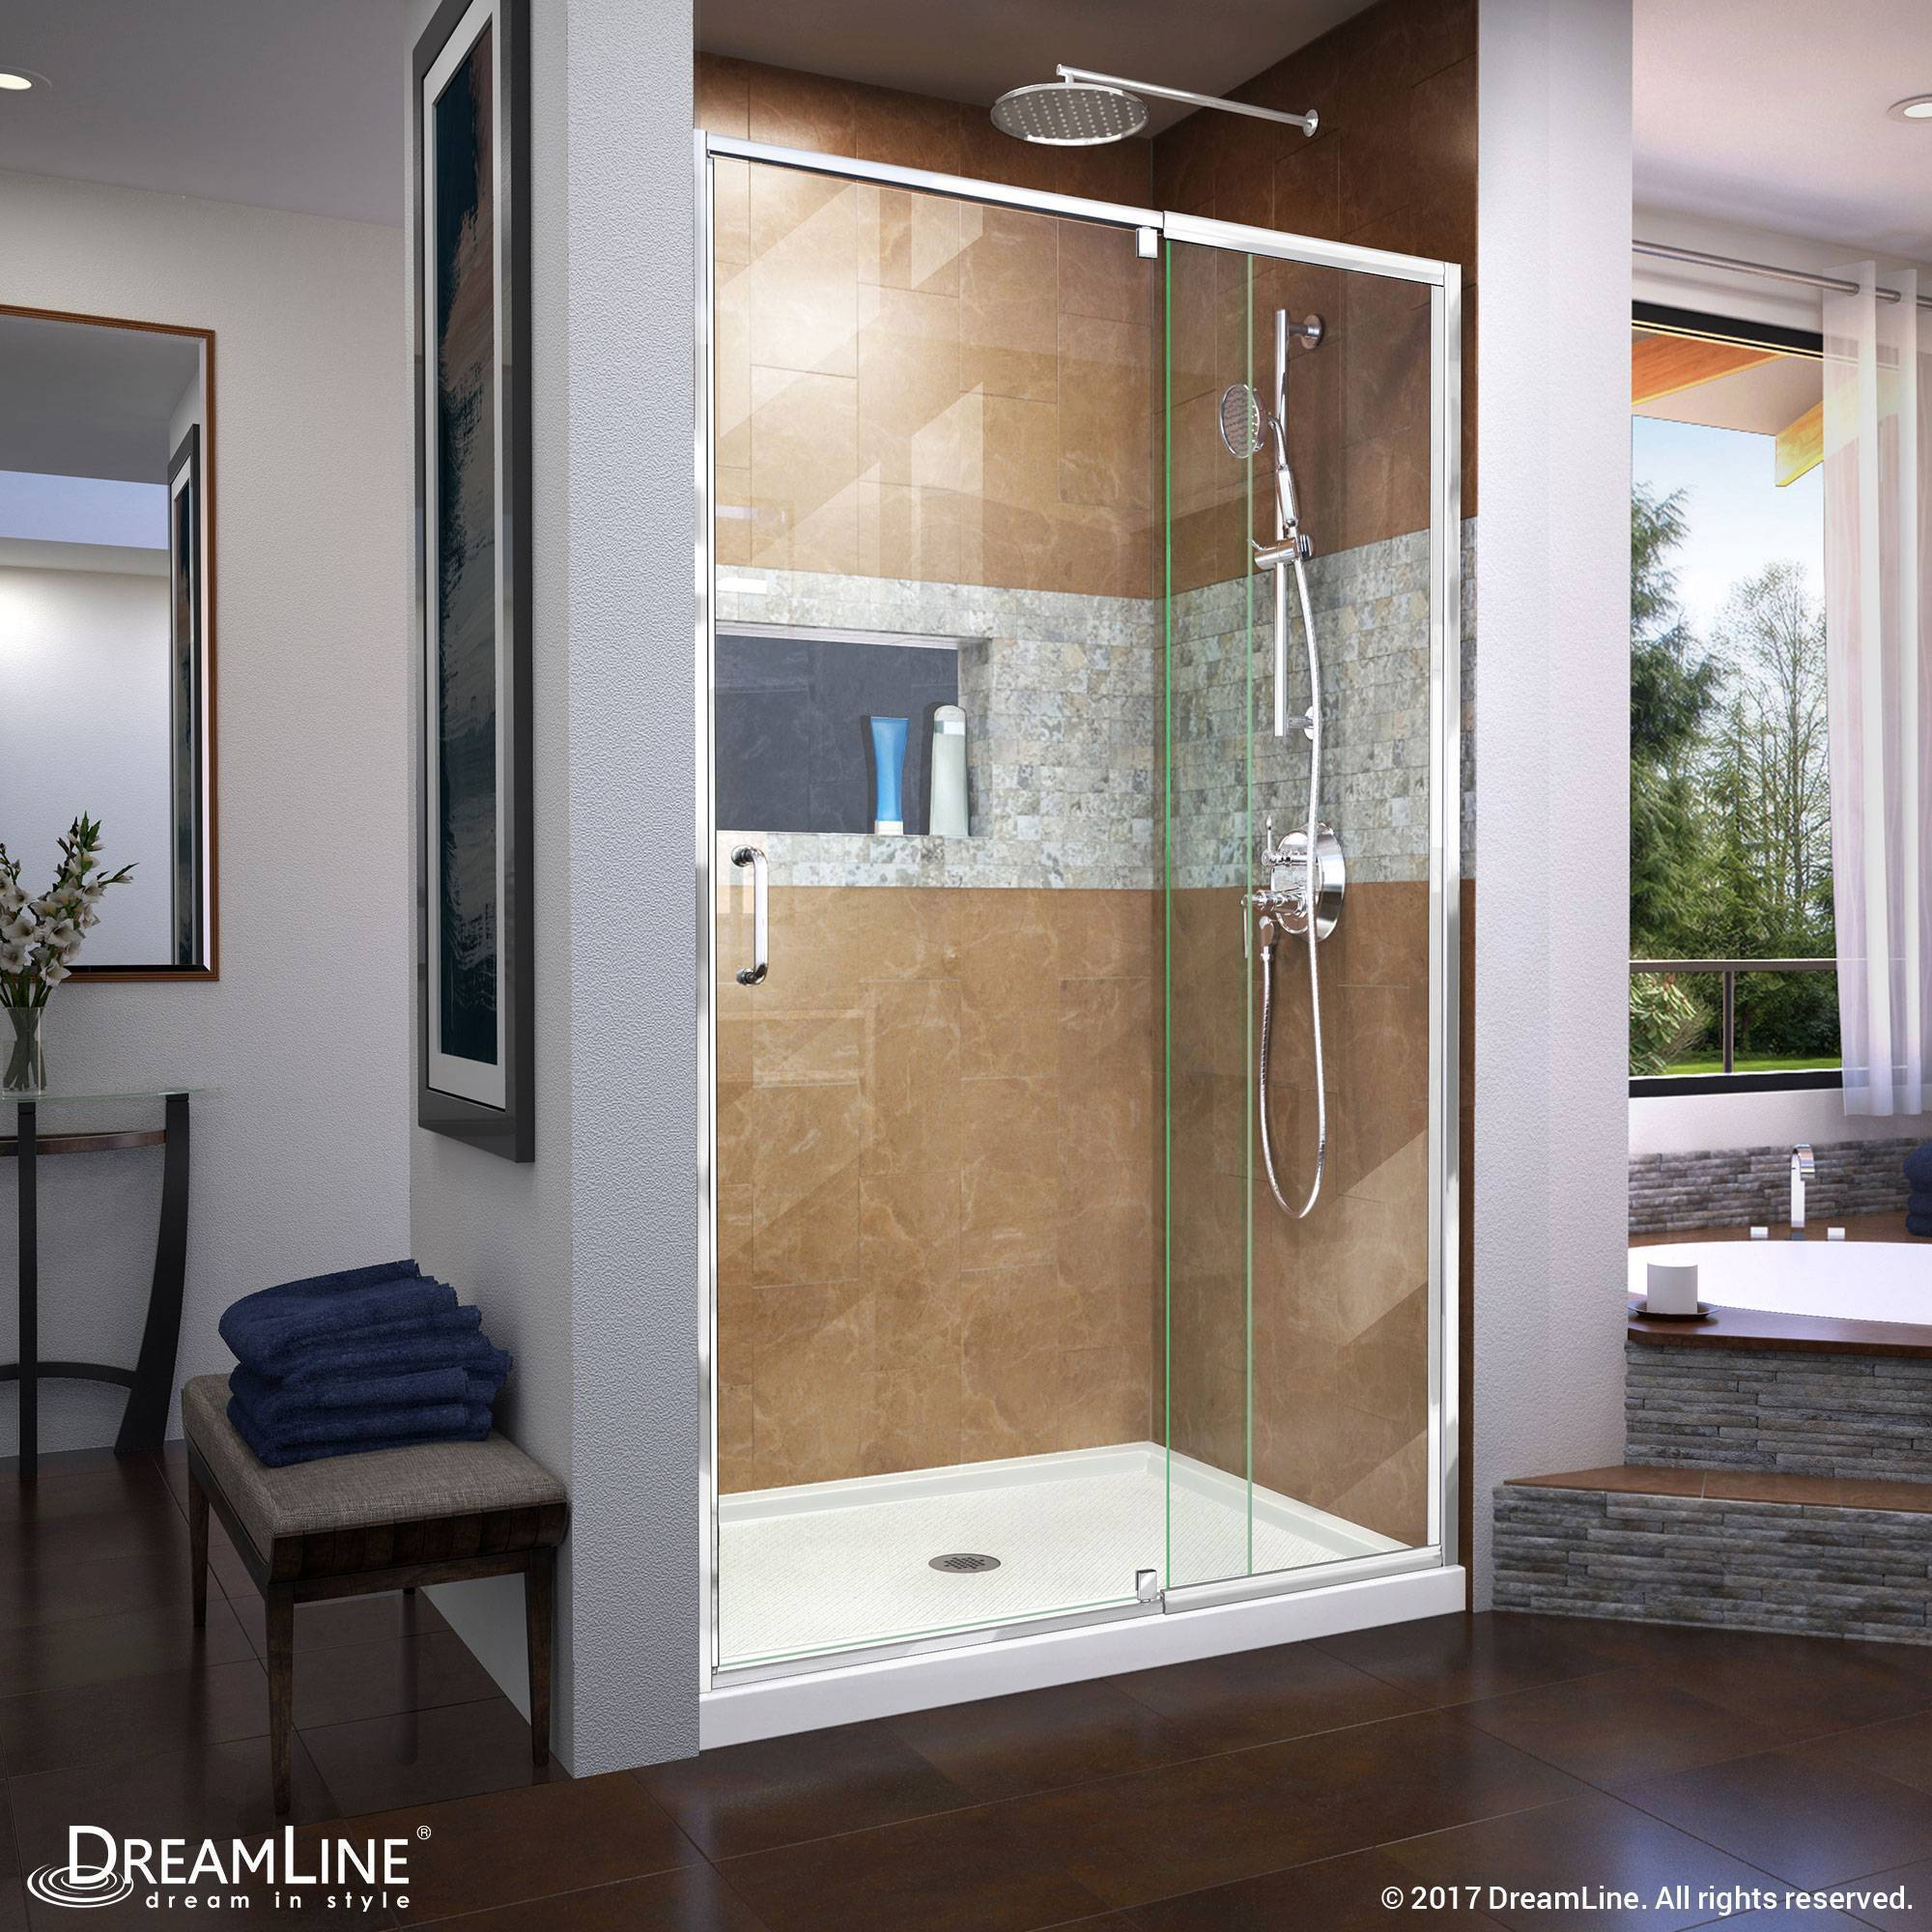 DreamLine Flex Semi-Frameless Pivot Shower Door